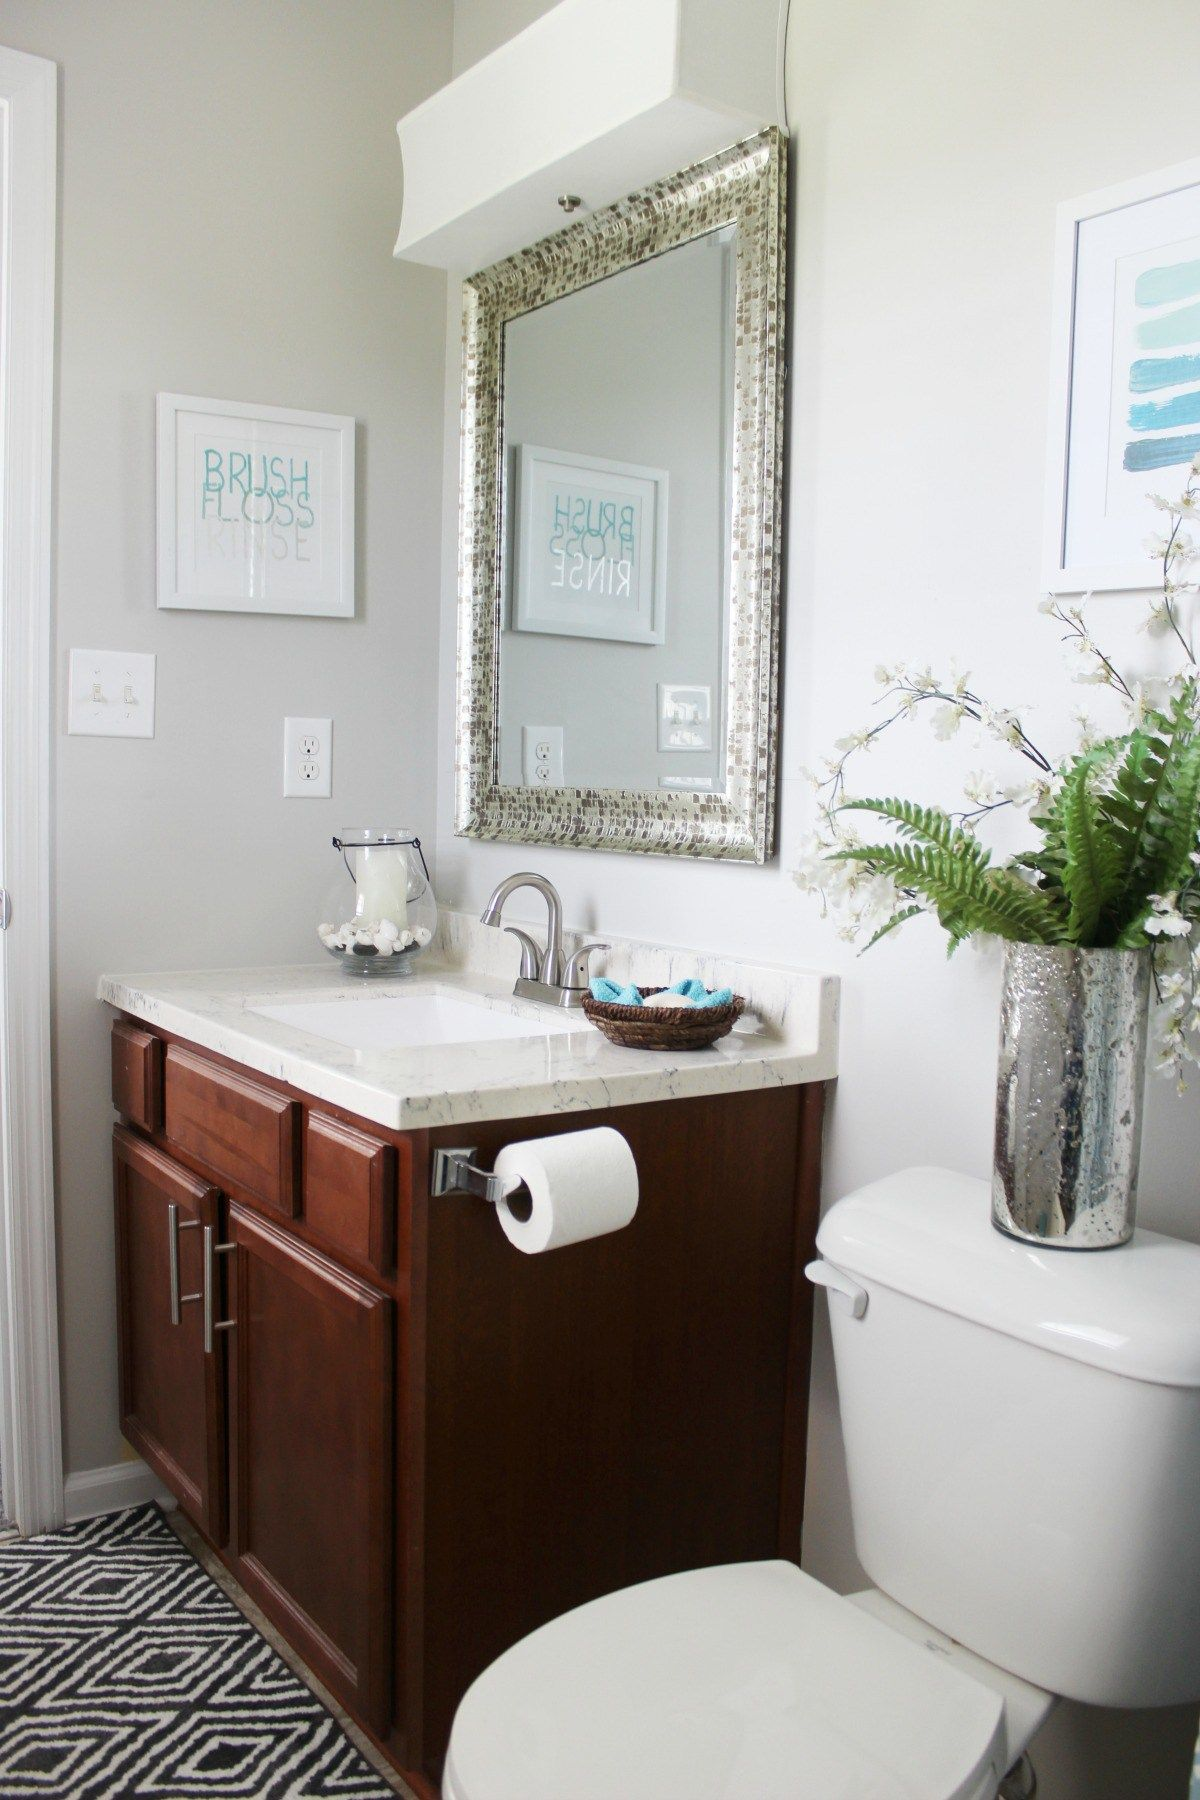 Before And After Fixer Upper Reveal Fixer Upper Home Design Decor Small Bathroom